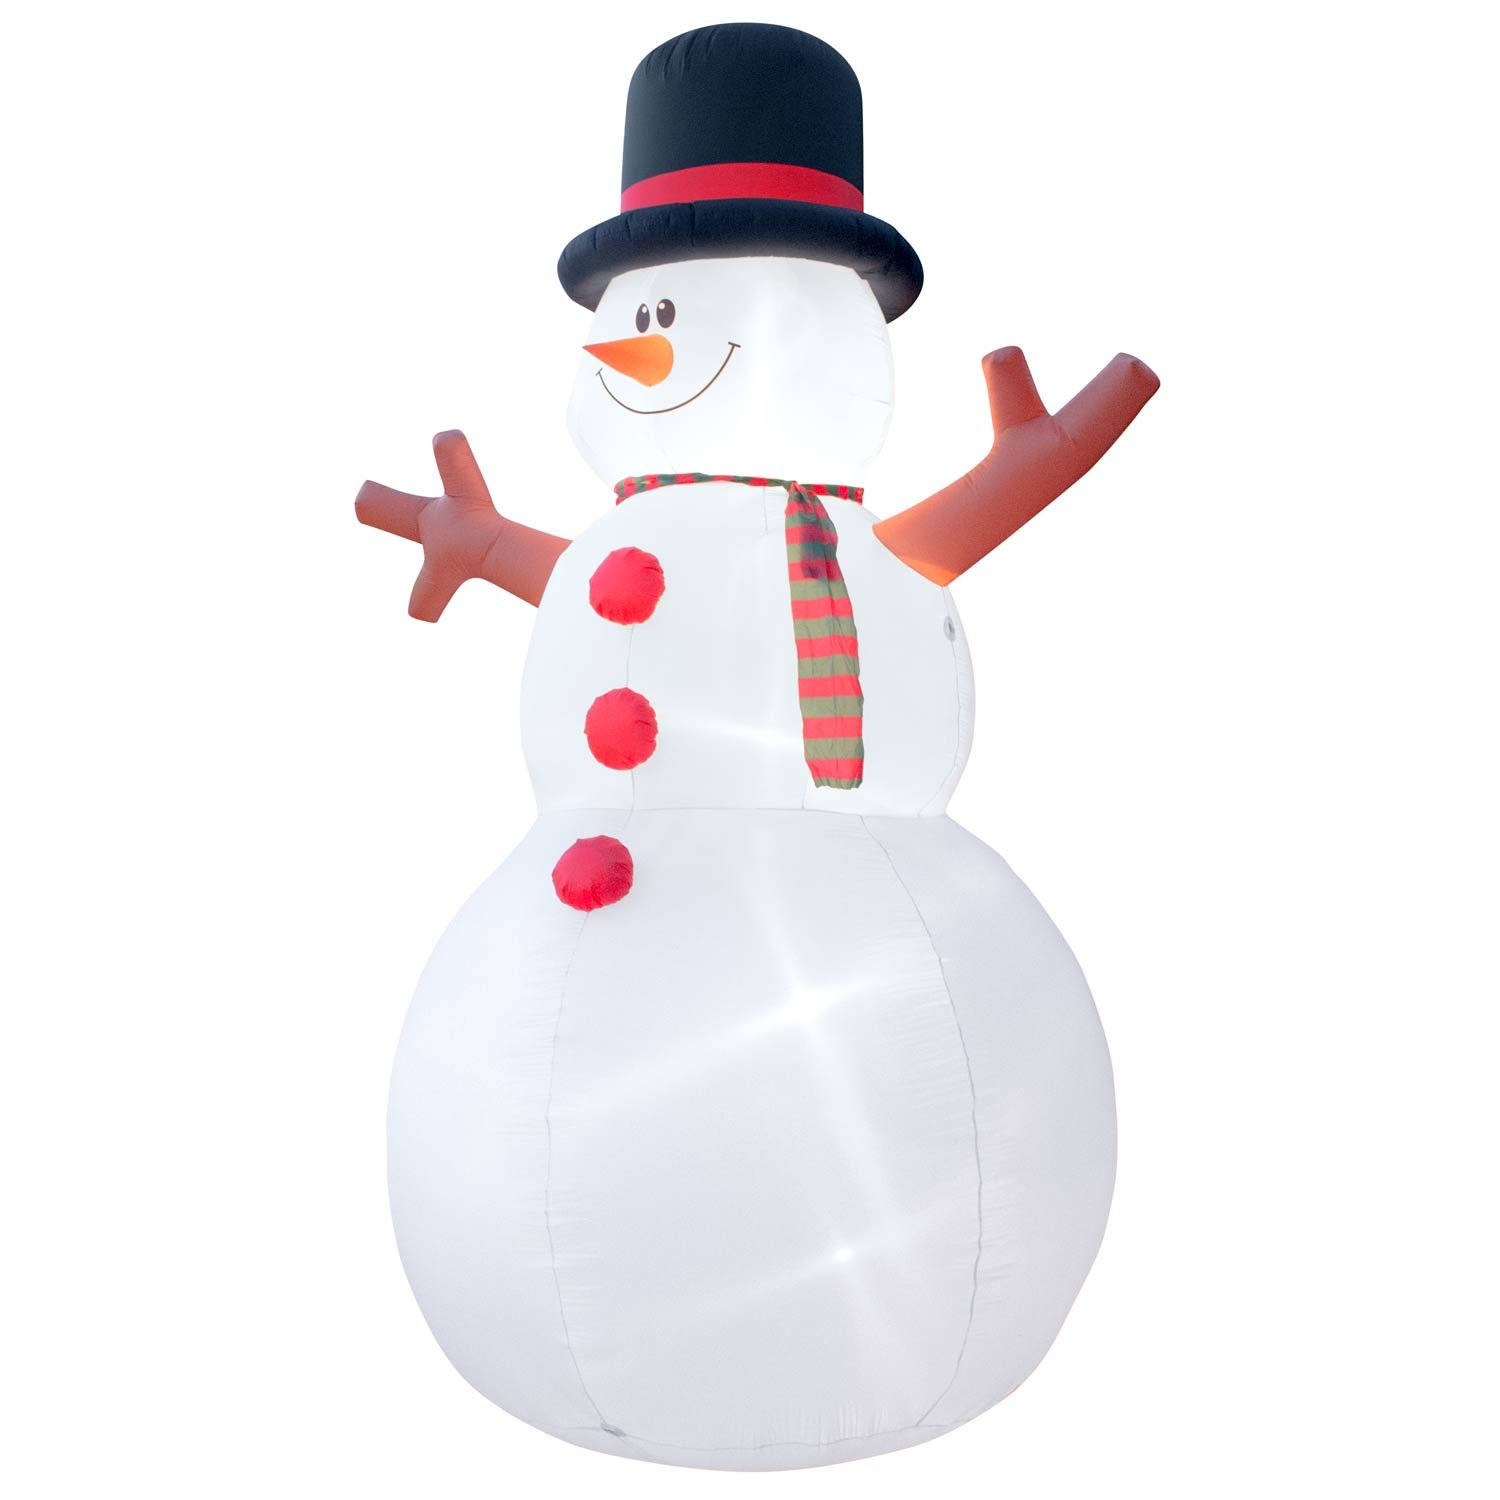 Holidayana Christmas Inflatable Giant 15 Ft. Snowman Inflatable Featuring Lighted Interior / Airblown Inflatable Christmas Decoration With Built In Fan And Anchor Ropes by Holidayana (Image #3)